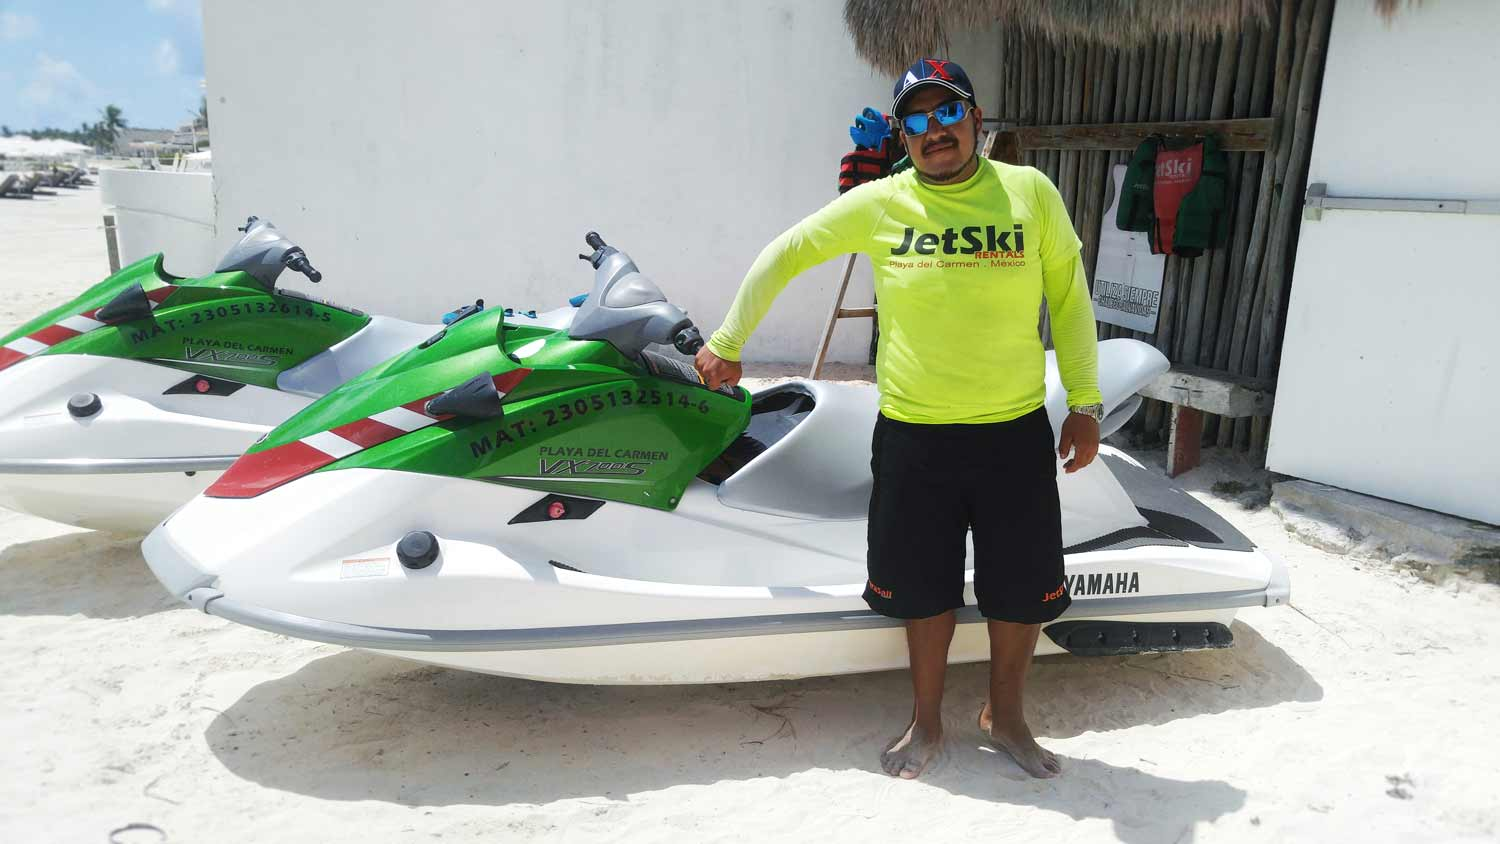 Oscar, one of the people who works at the jet ski rental area, standing next to a wave runner in Playa Del Carmen.